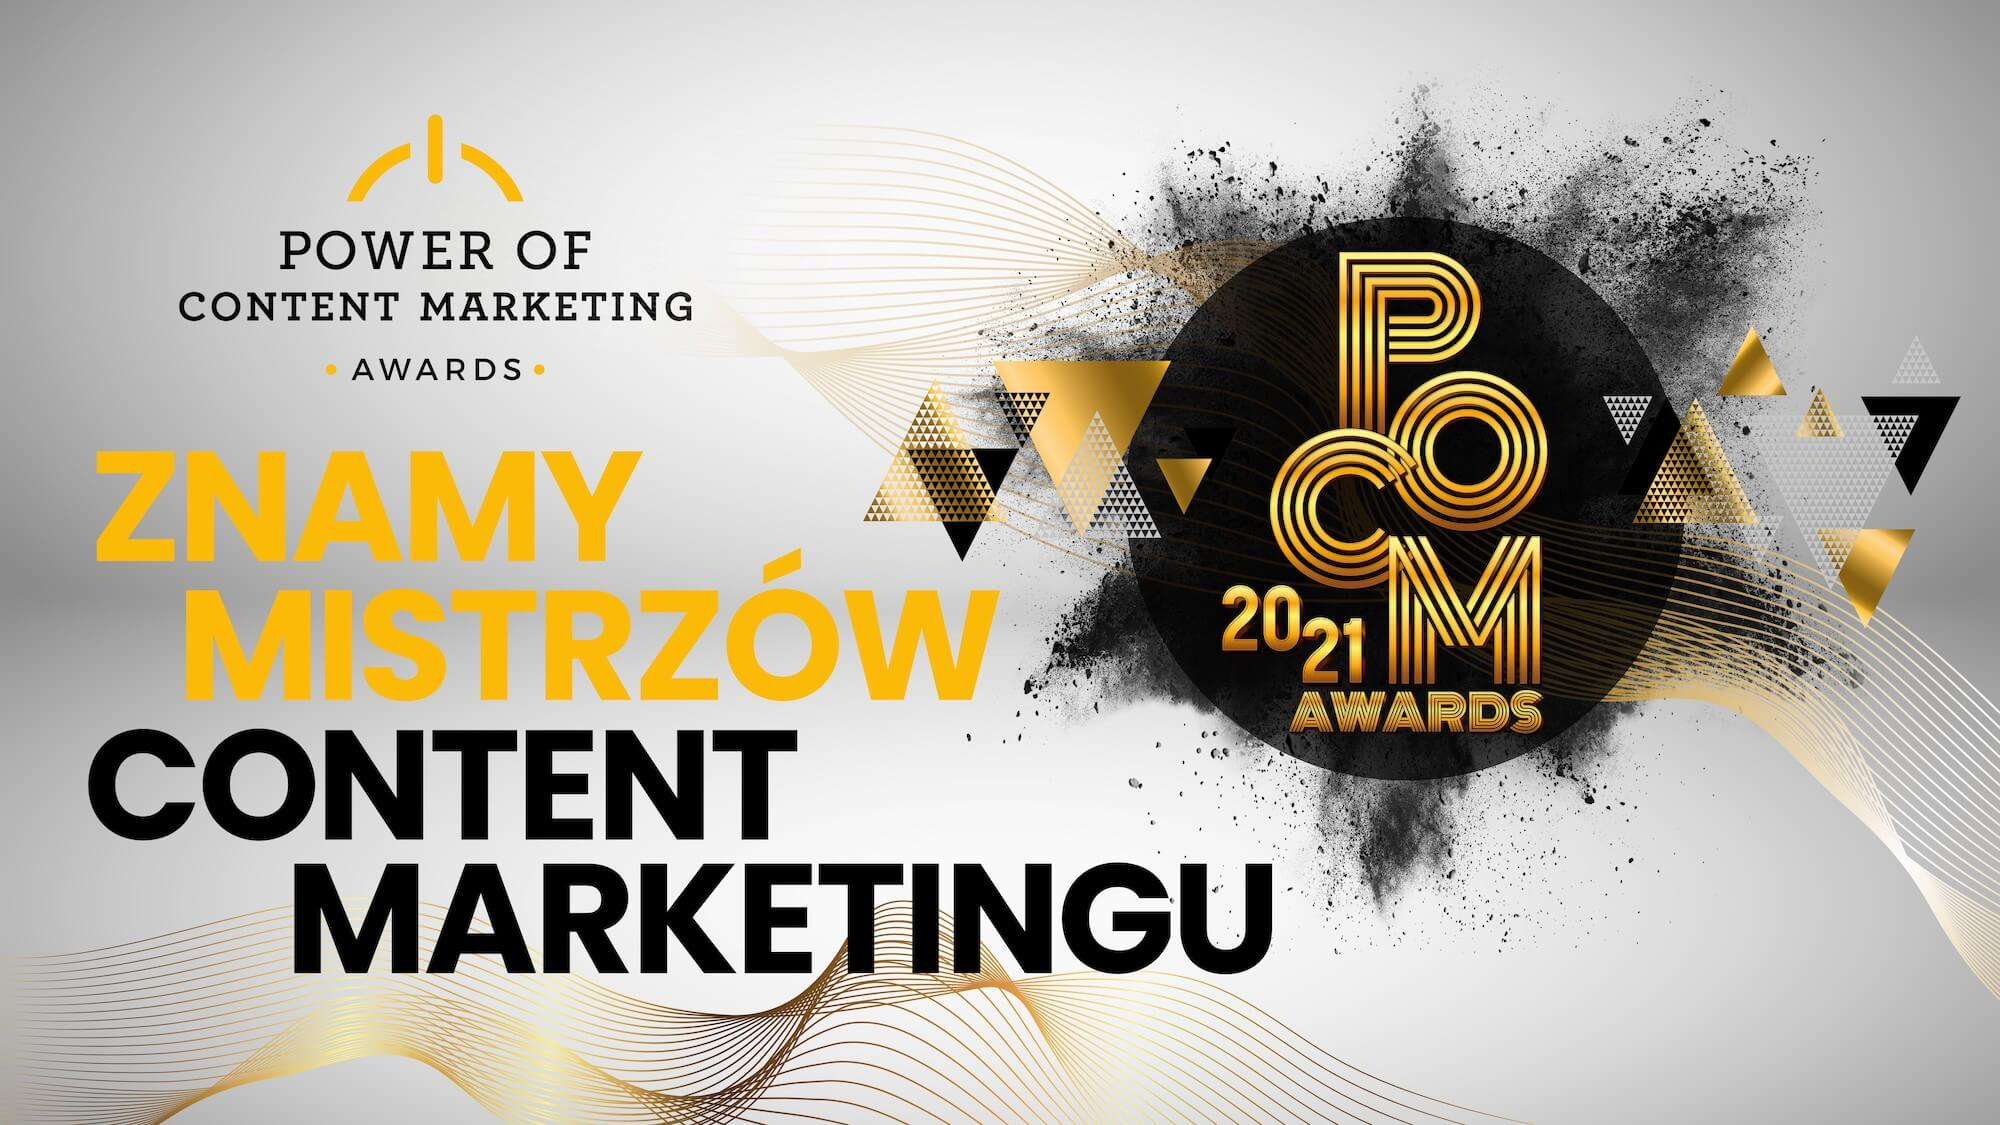 Power of Content Marketing Awards